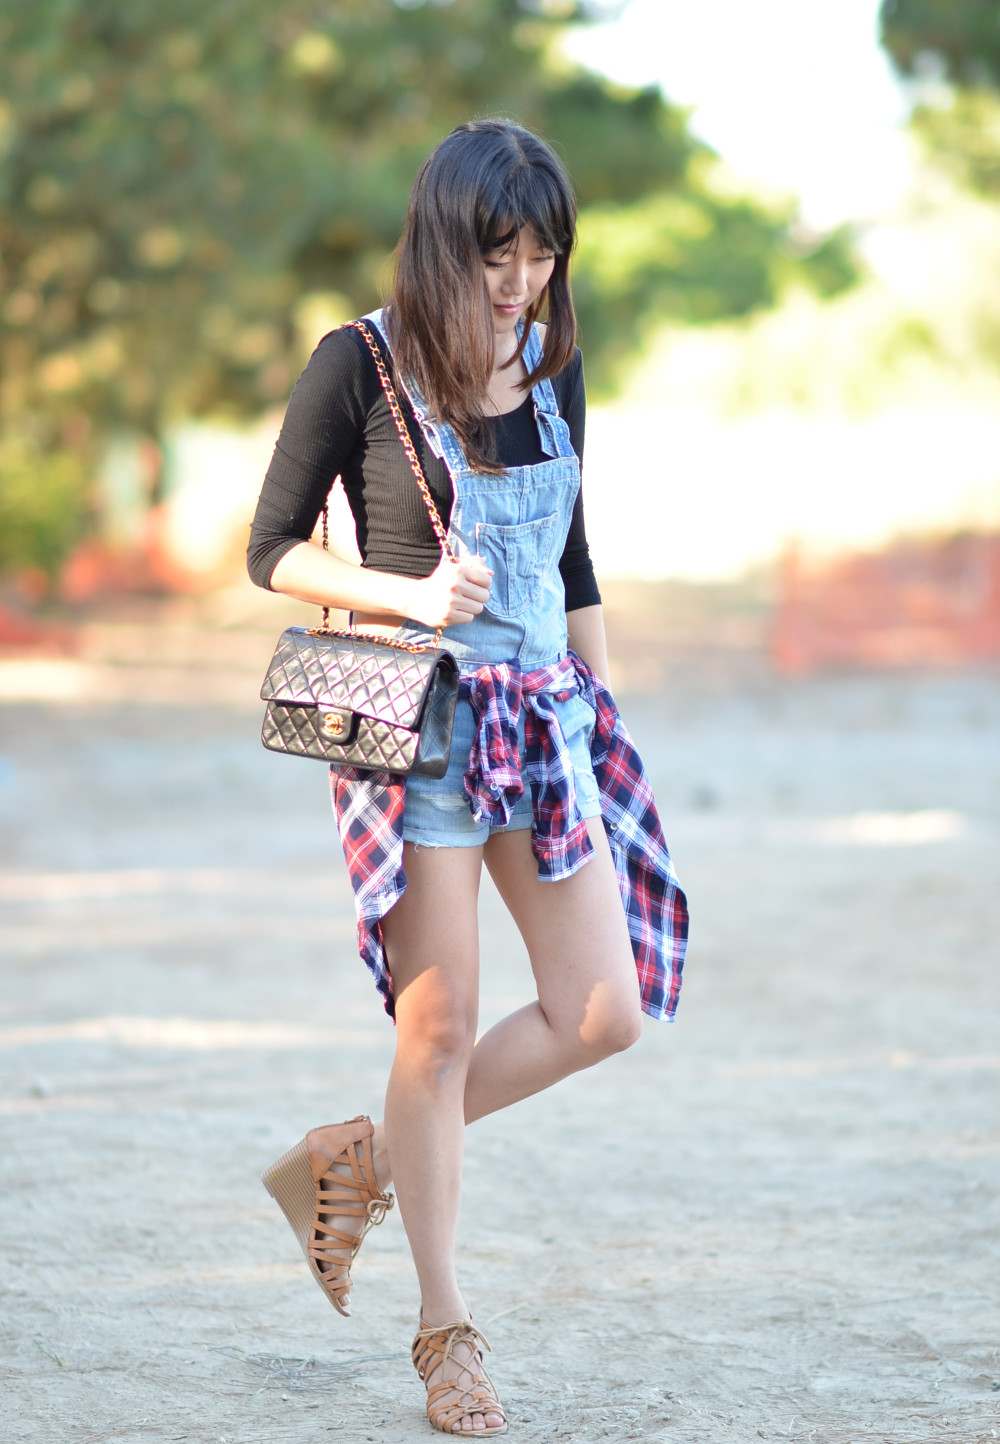 chanel quilted flap bag worn with casual denim outfit